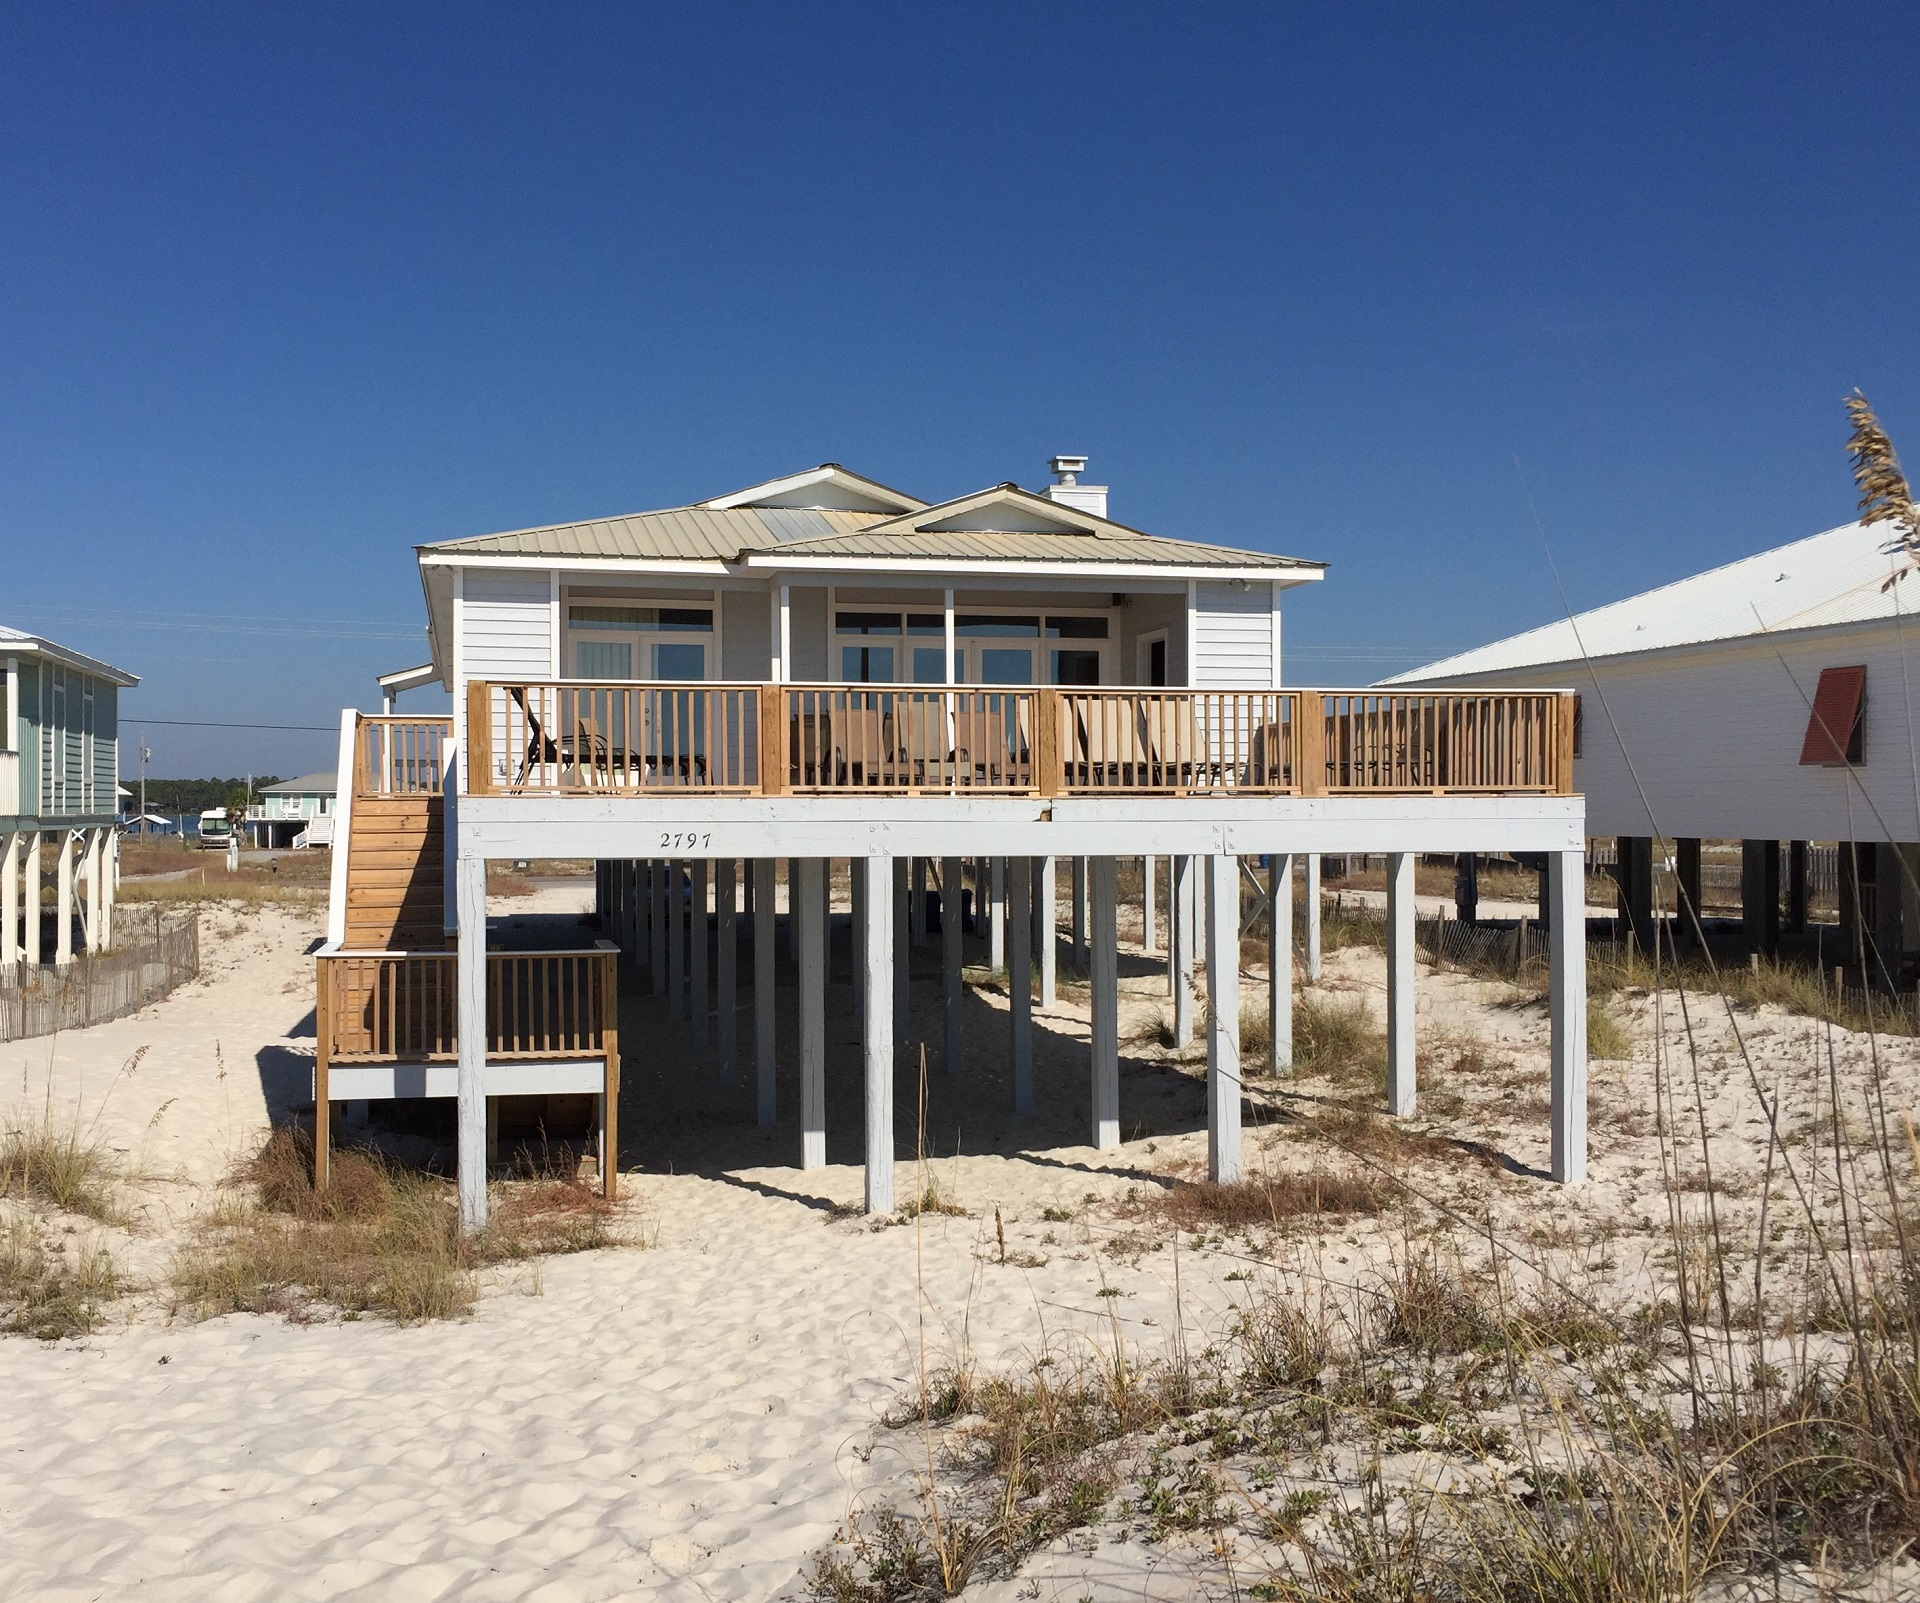 Dates For 3 Nights Call Us Today Or Visit Our Website To Take Advantage Of This Unique Opportunity Enjoy A Beautiful Gulf Ss Beach House Al